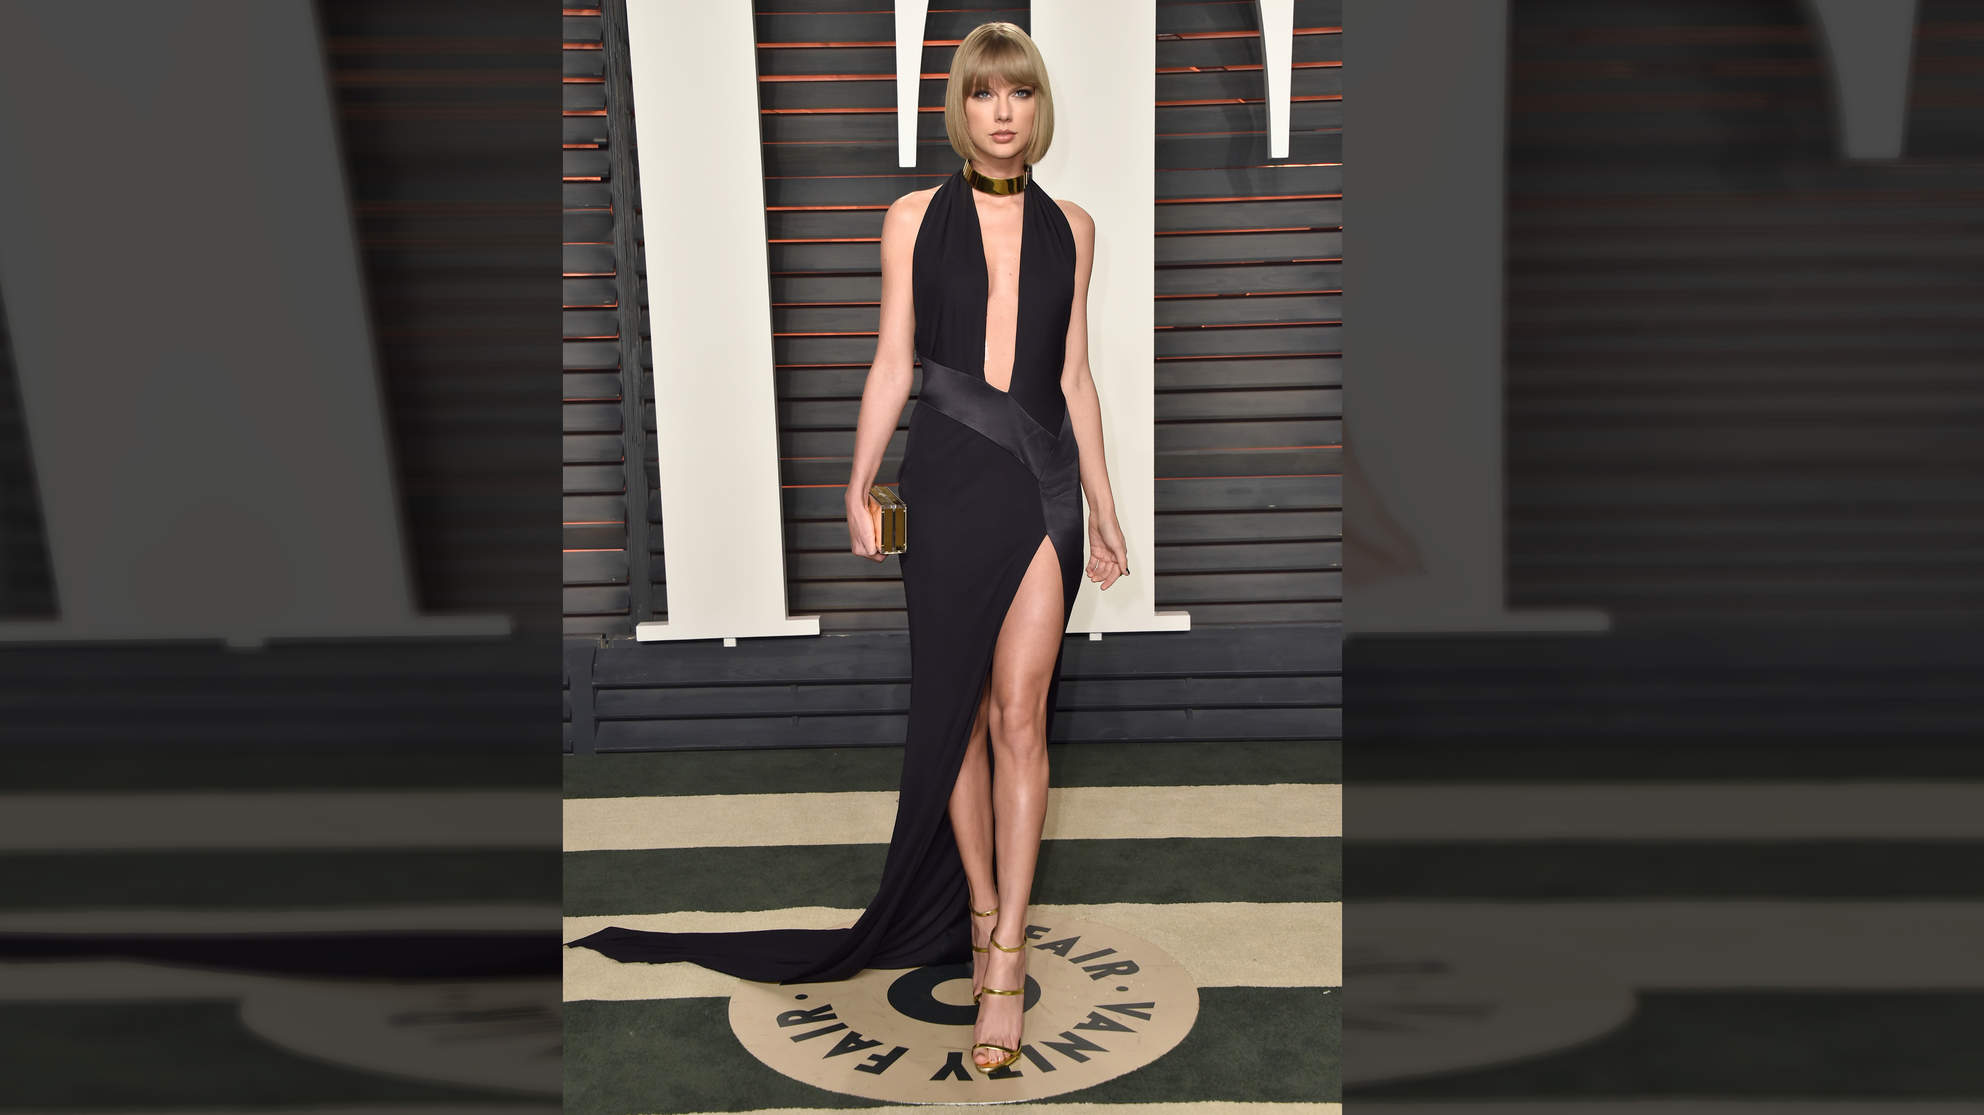 The Workout Move That Helps Give Taylor Swift Her Strong, Lean Legs